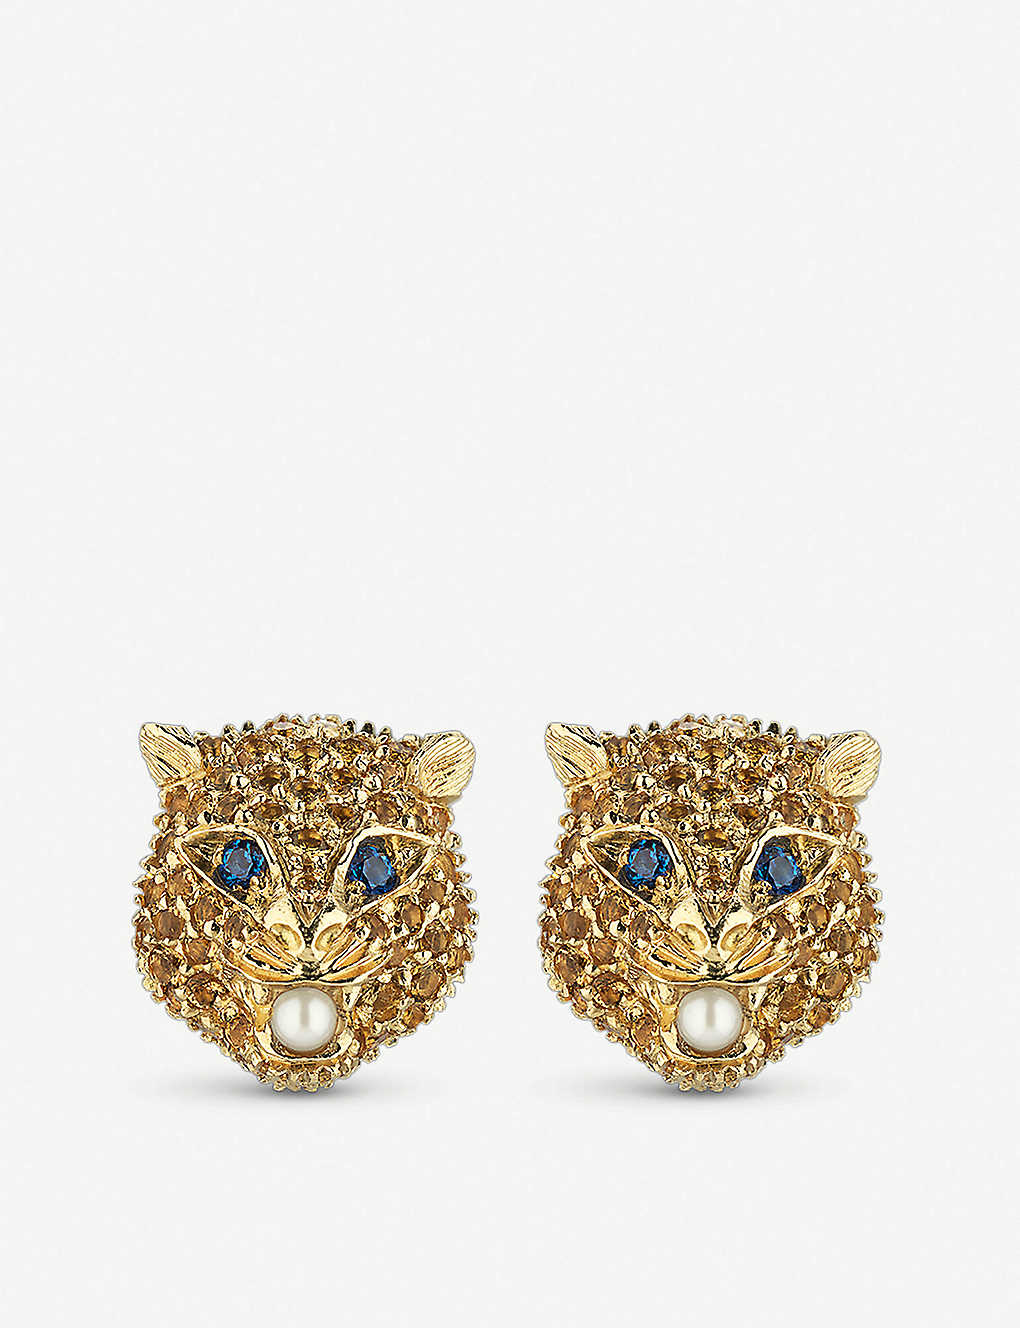 6bd6b2cbf GUCCI Le Marché des Merveilles 18ct yellow-gold, citrine quartz, blue topaz  and pearl earrings